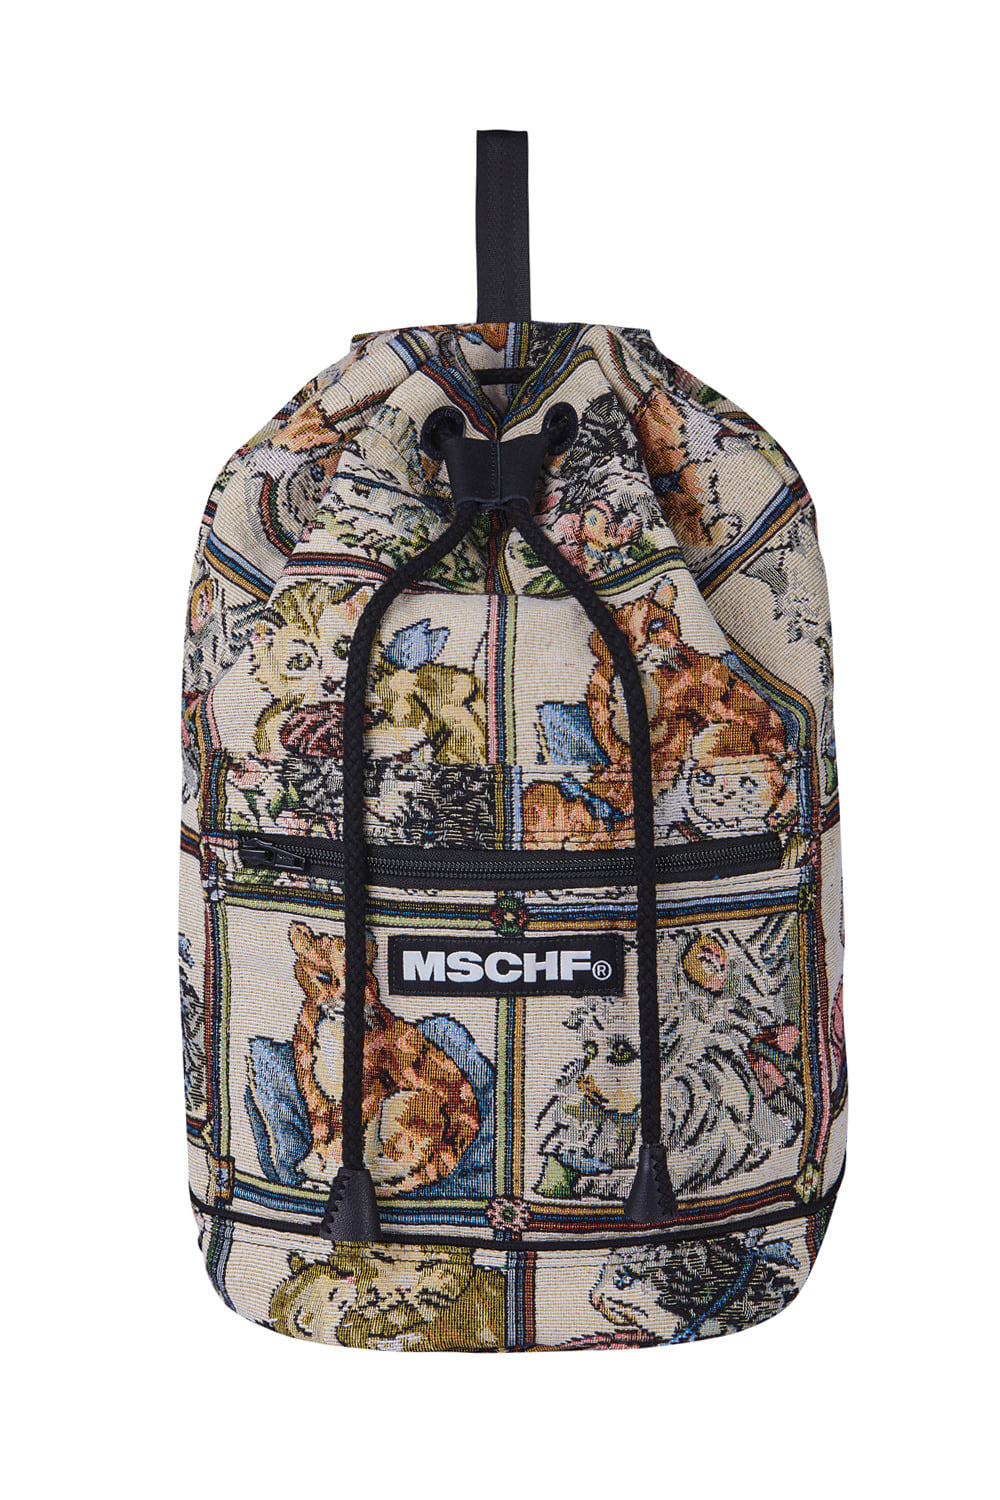 CAT DRAWSTRING BACKPACK_beige/black